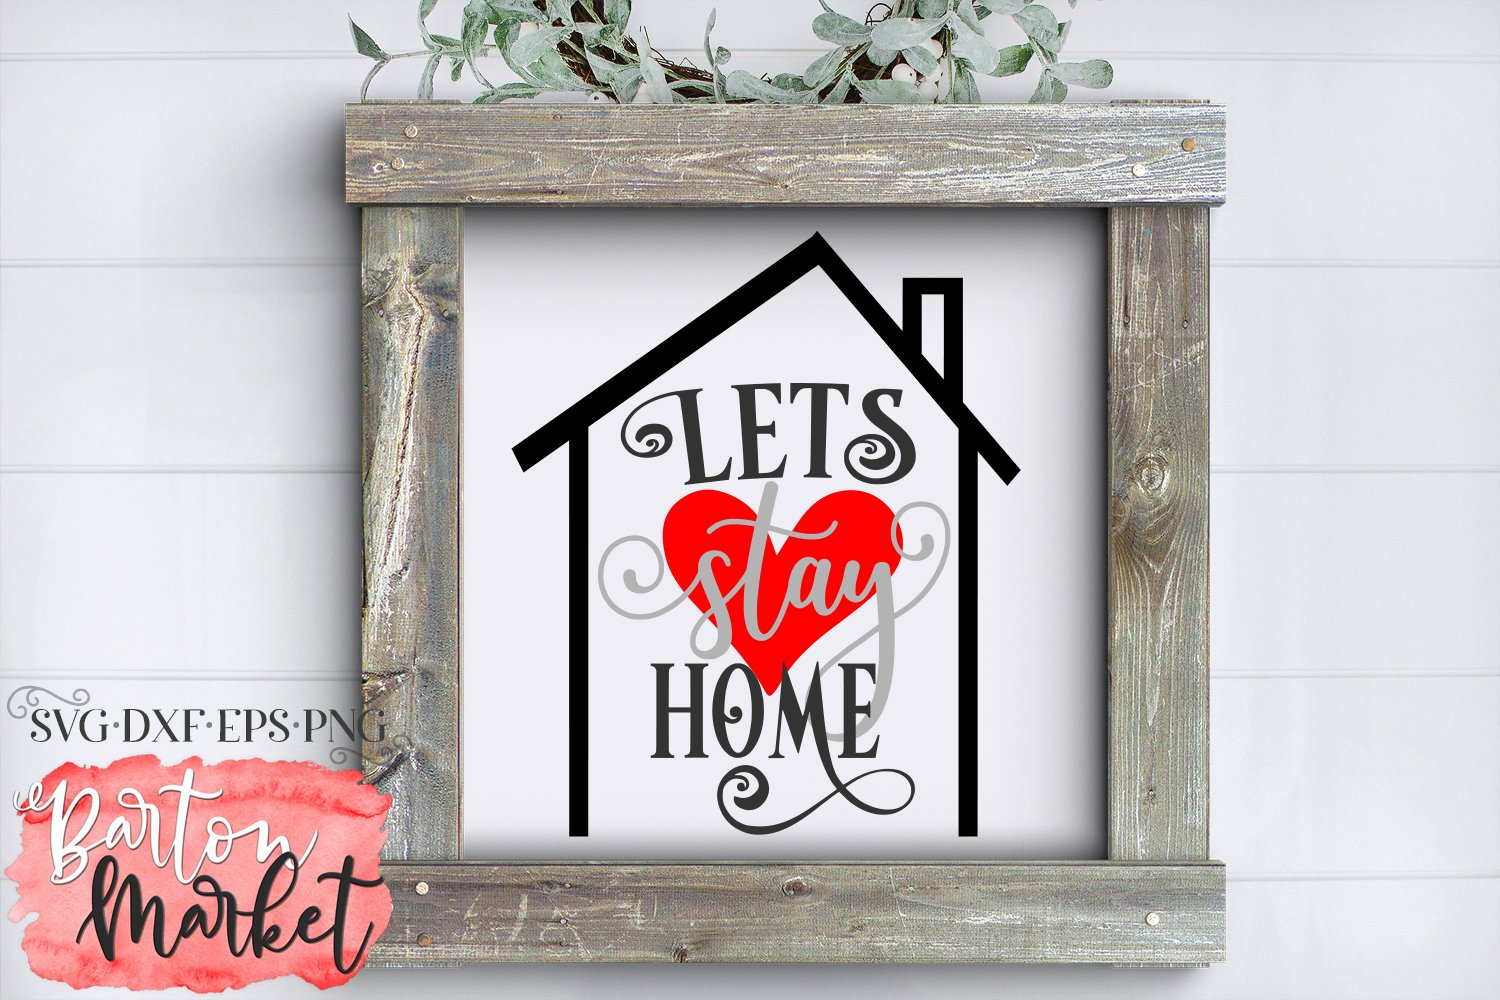 Lets Stay Home SVG DXF EPS PNG example image 3